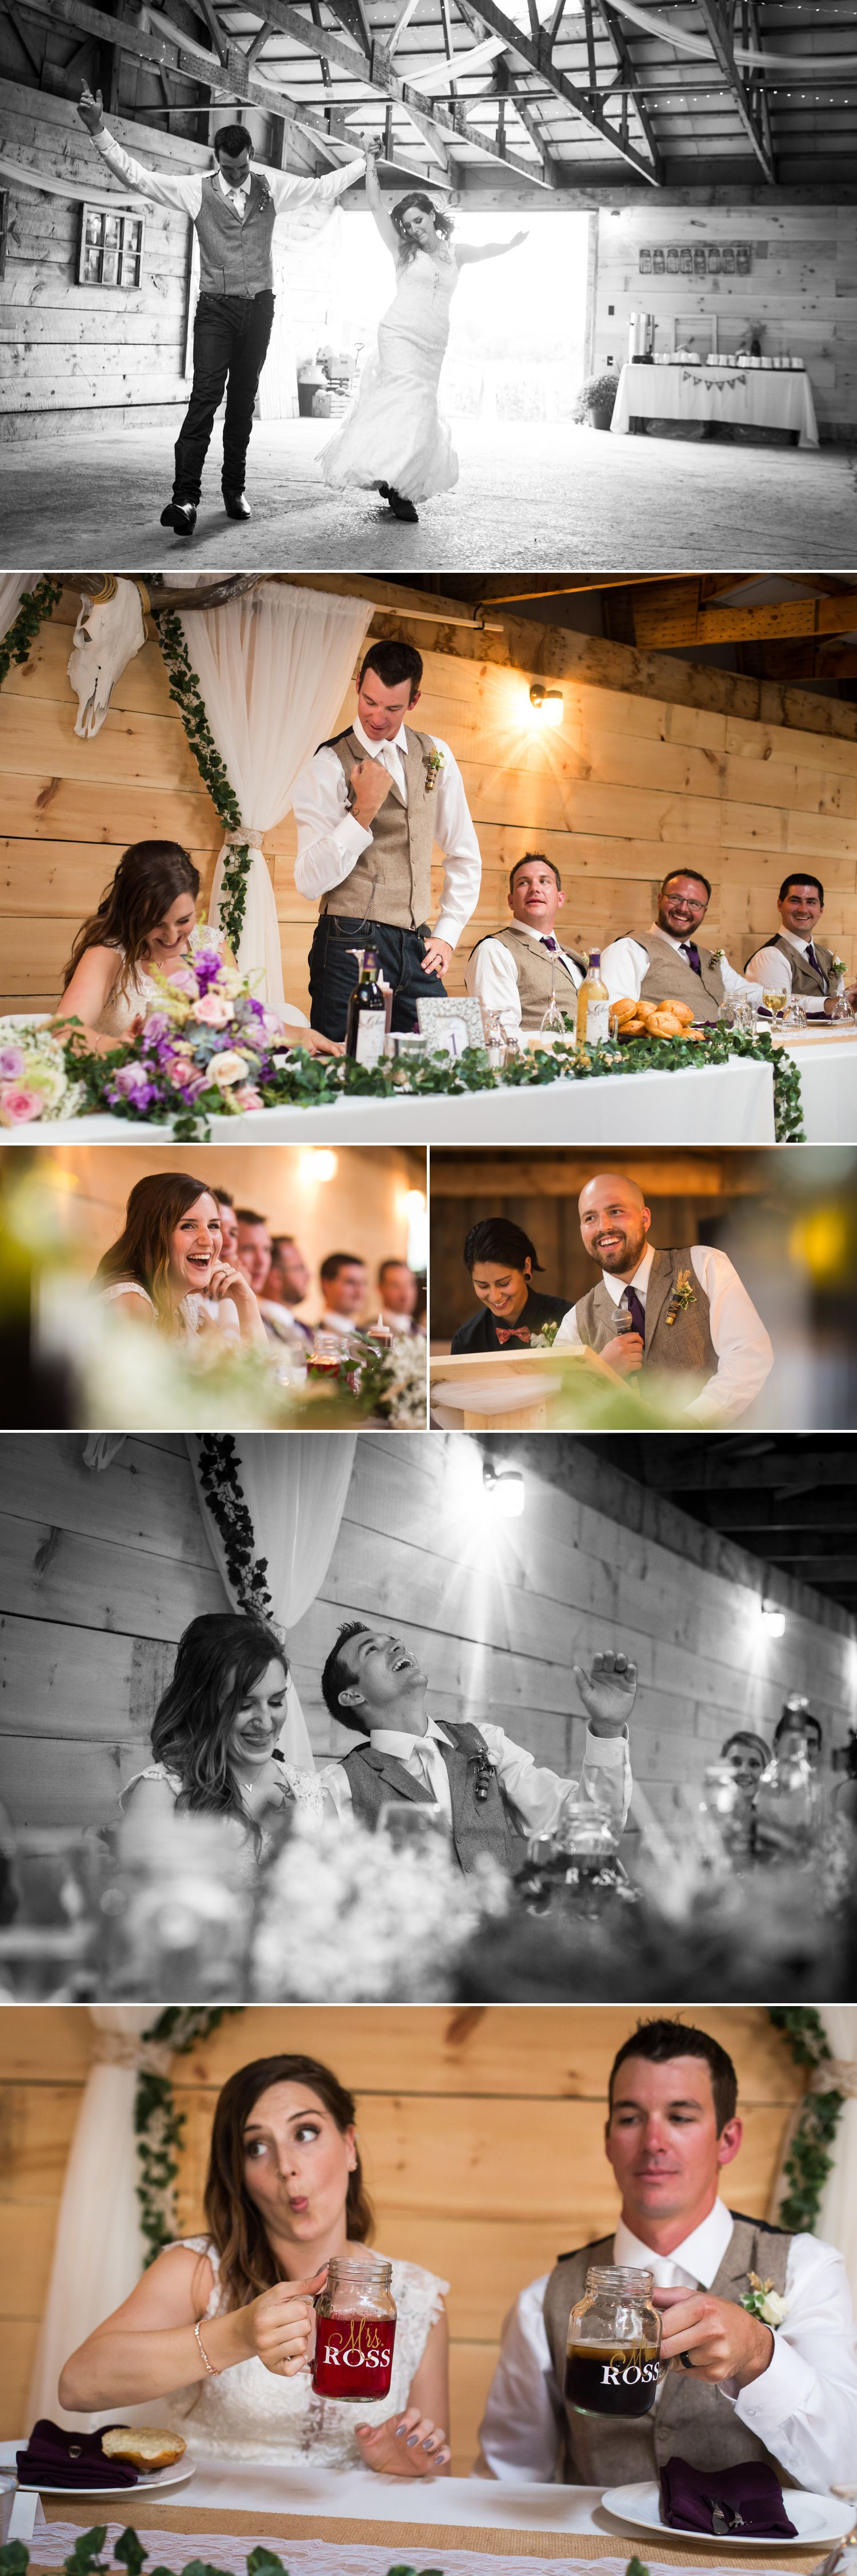 A wedding reception iside the couples newly renovated rustic barn